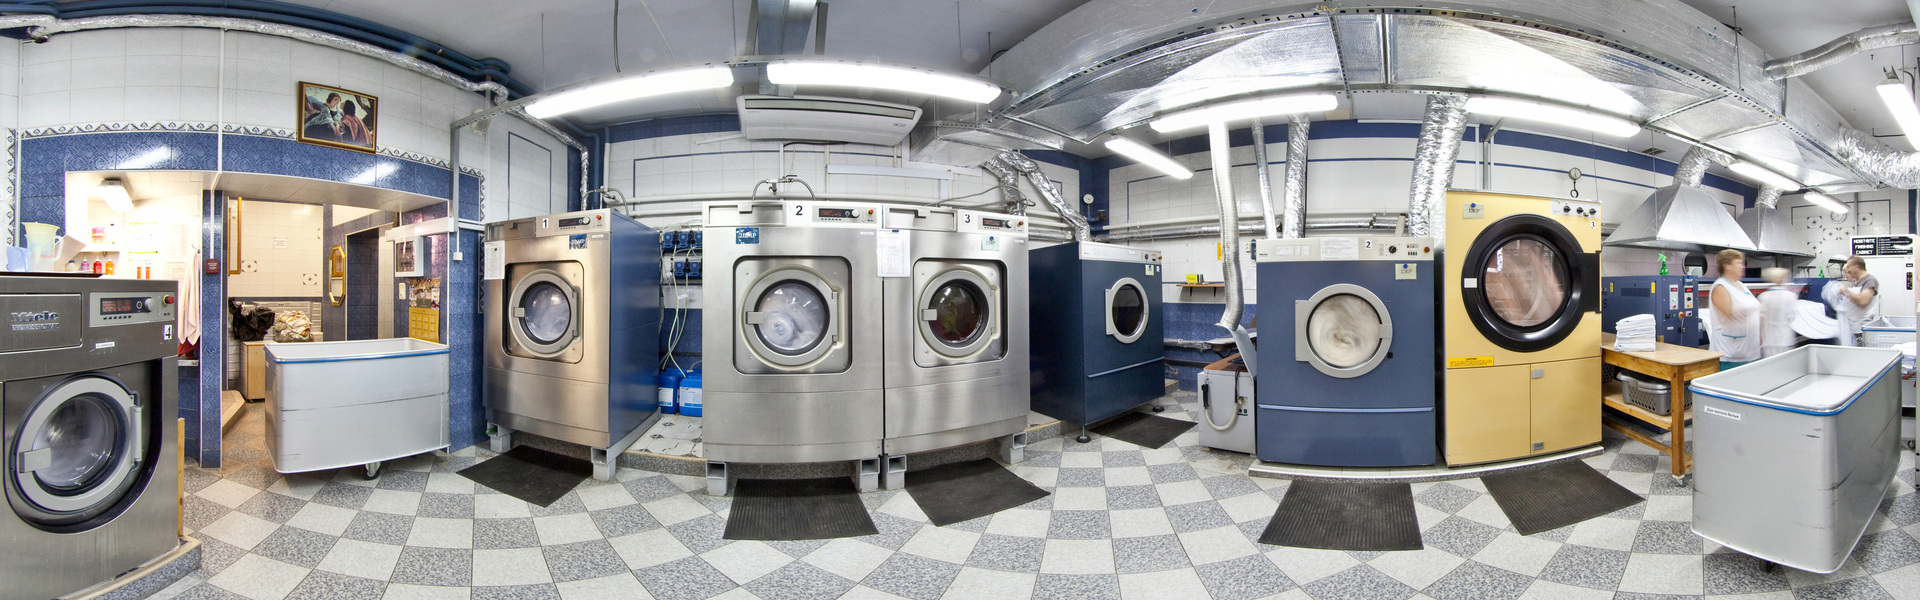 Large laundry panorama 1